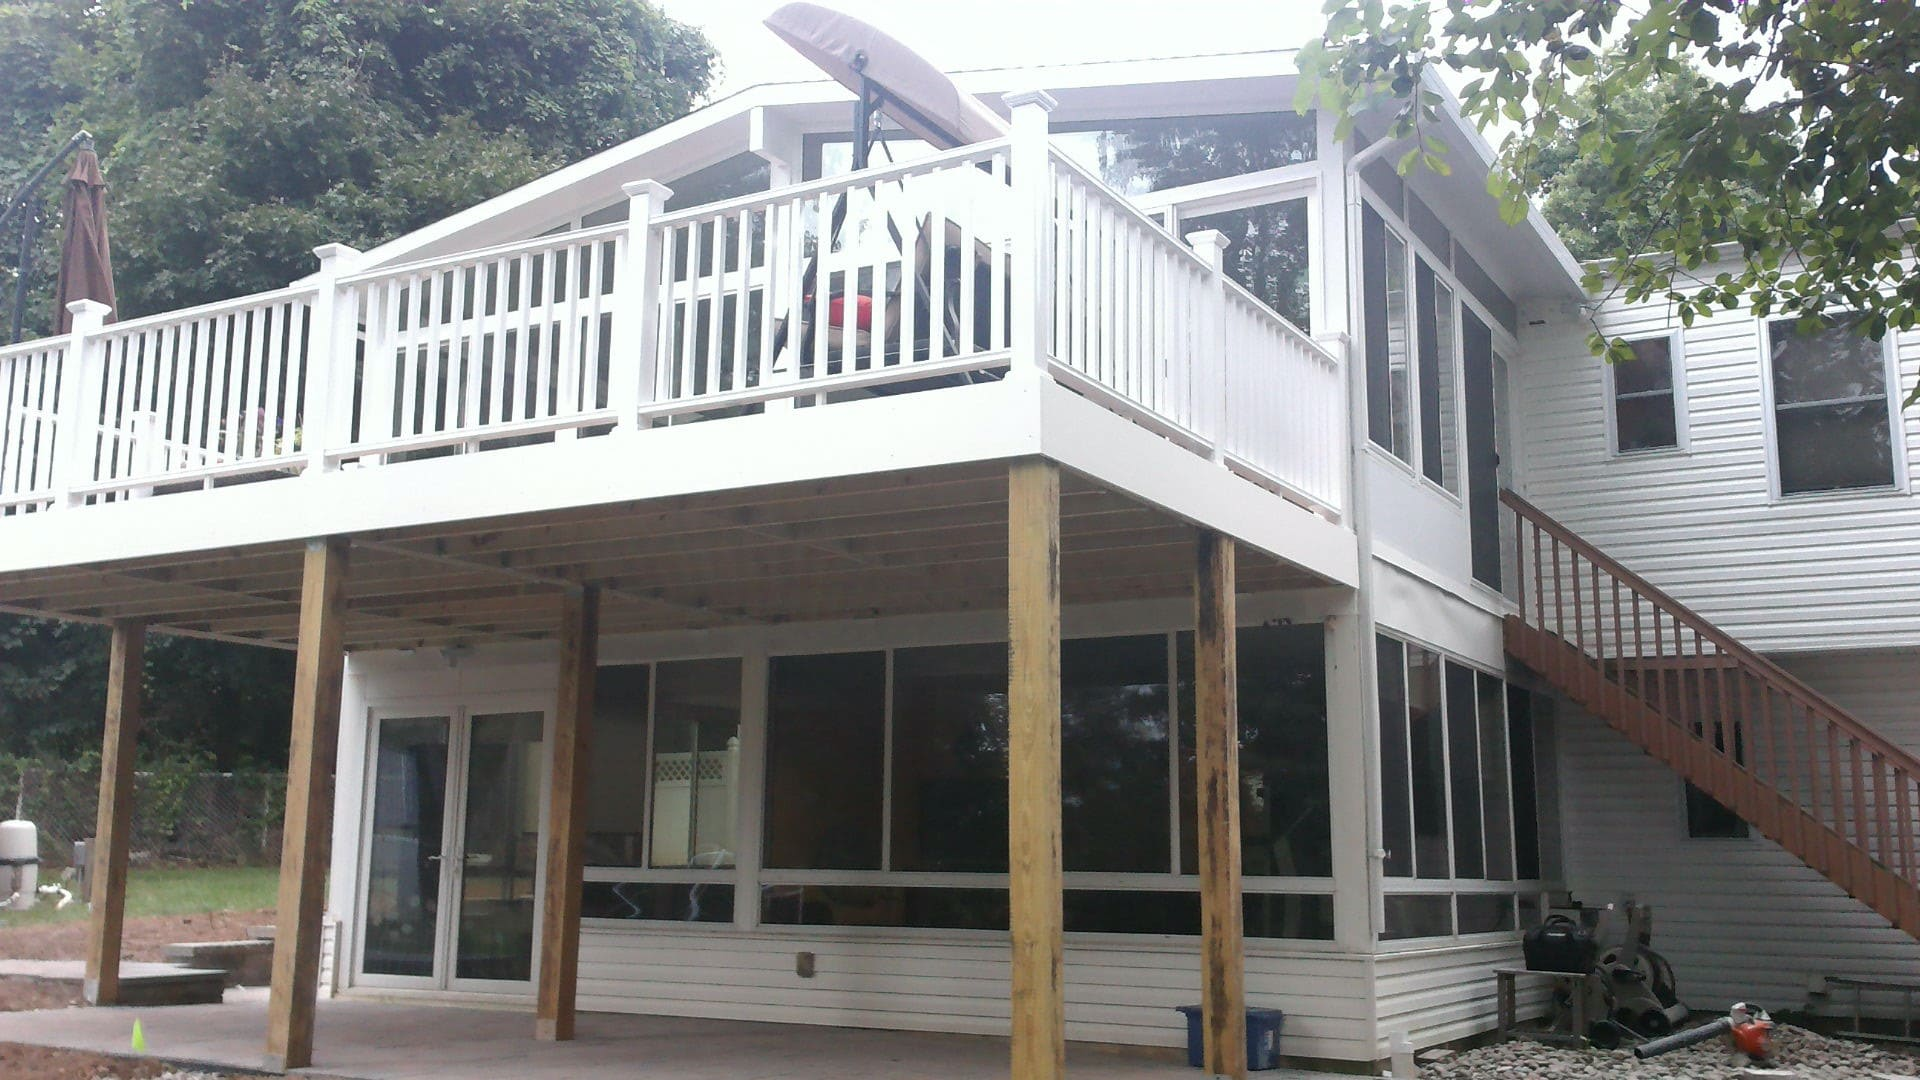 Paramus, NJ, Home Addition and Deck by NY NJ Sunrooms and Additions